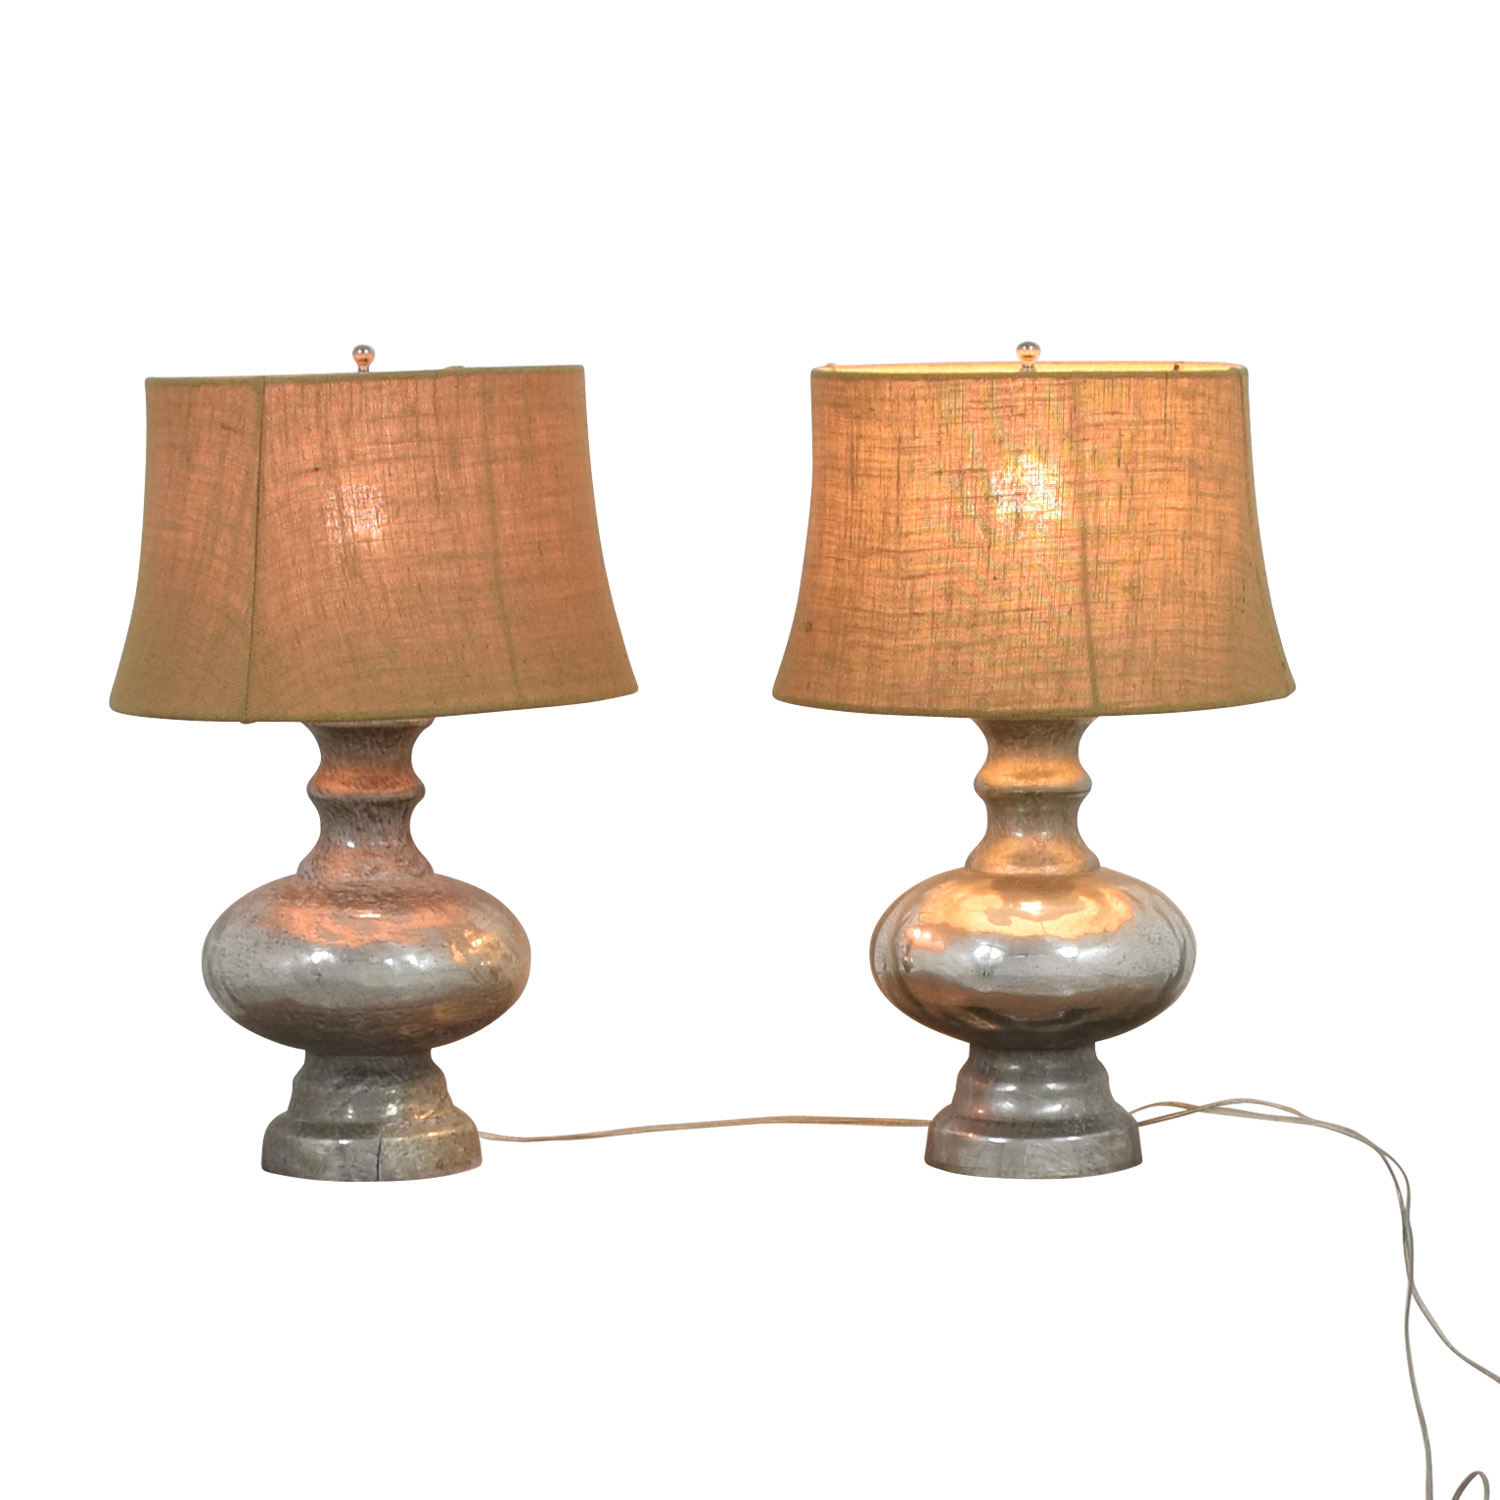 Pottery Barn Pottery Barn Antique Mercury Glass Table Lamps Lamps